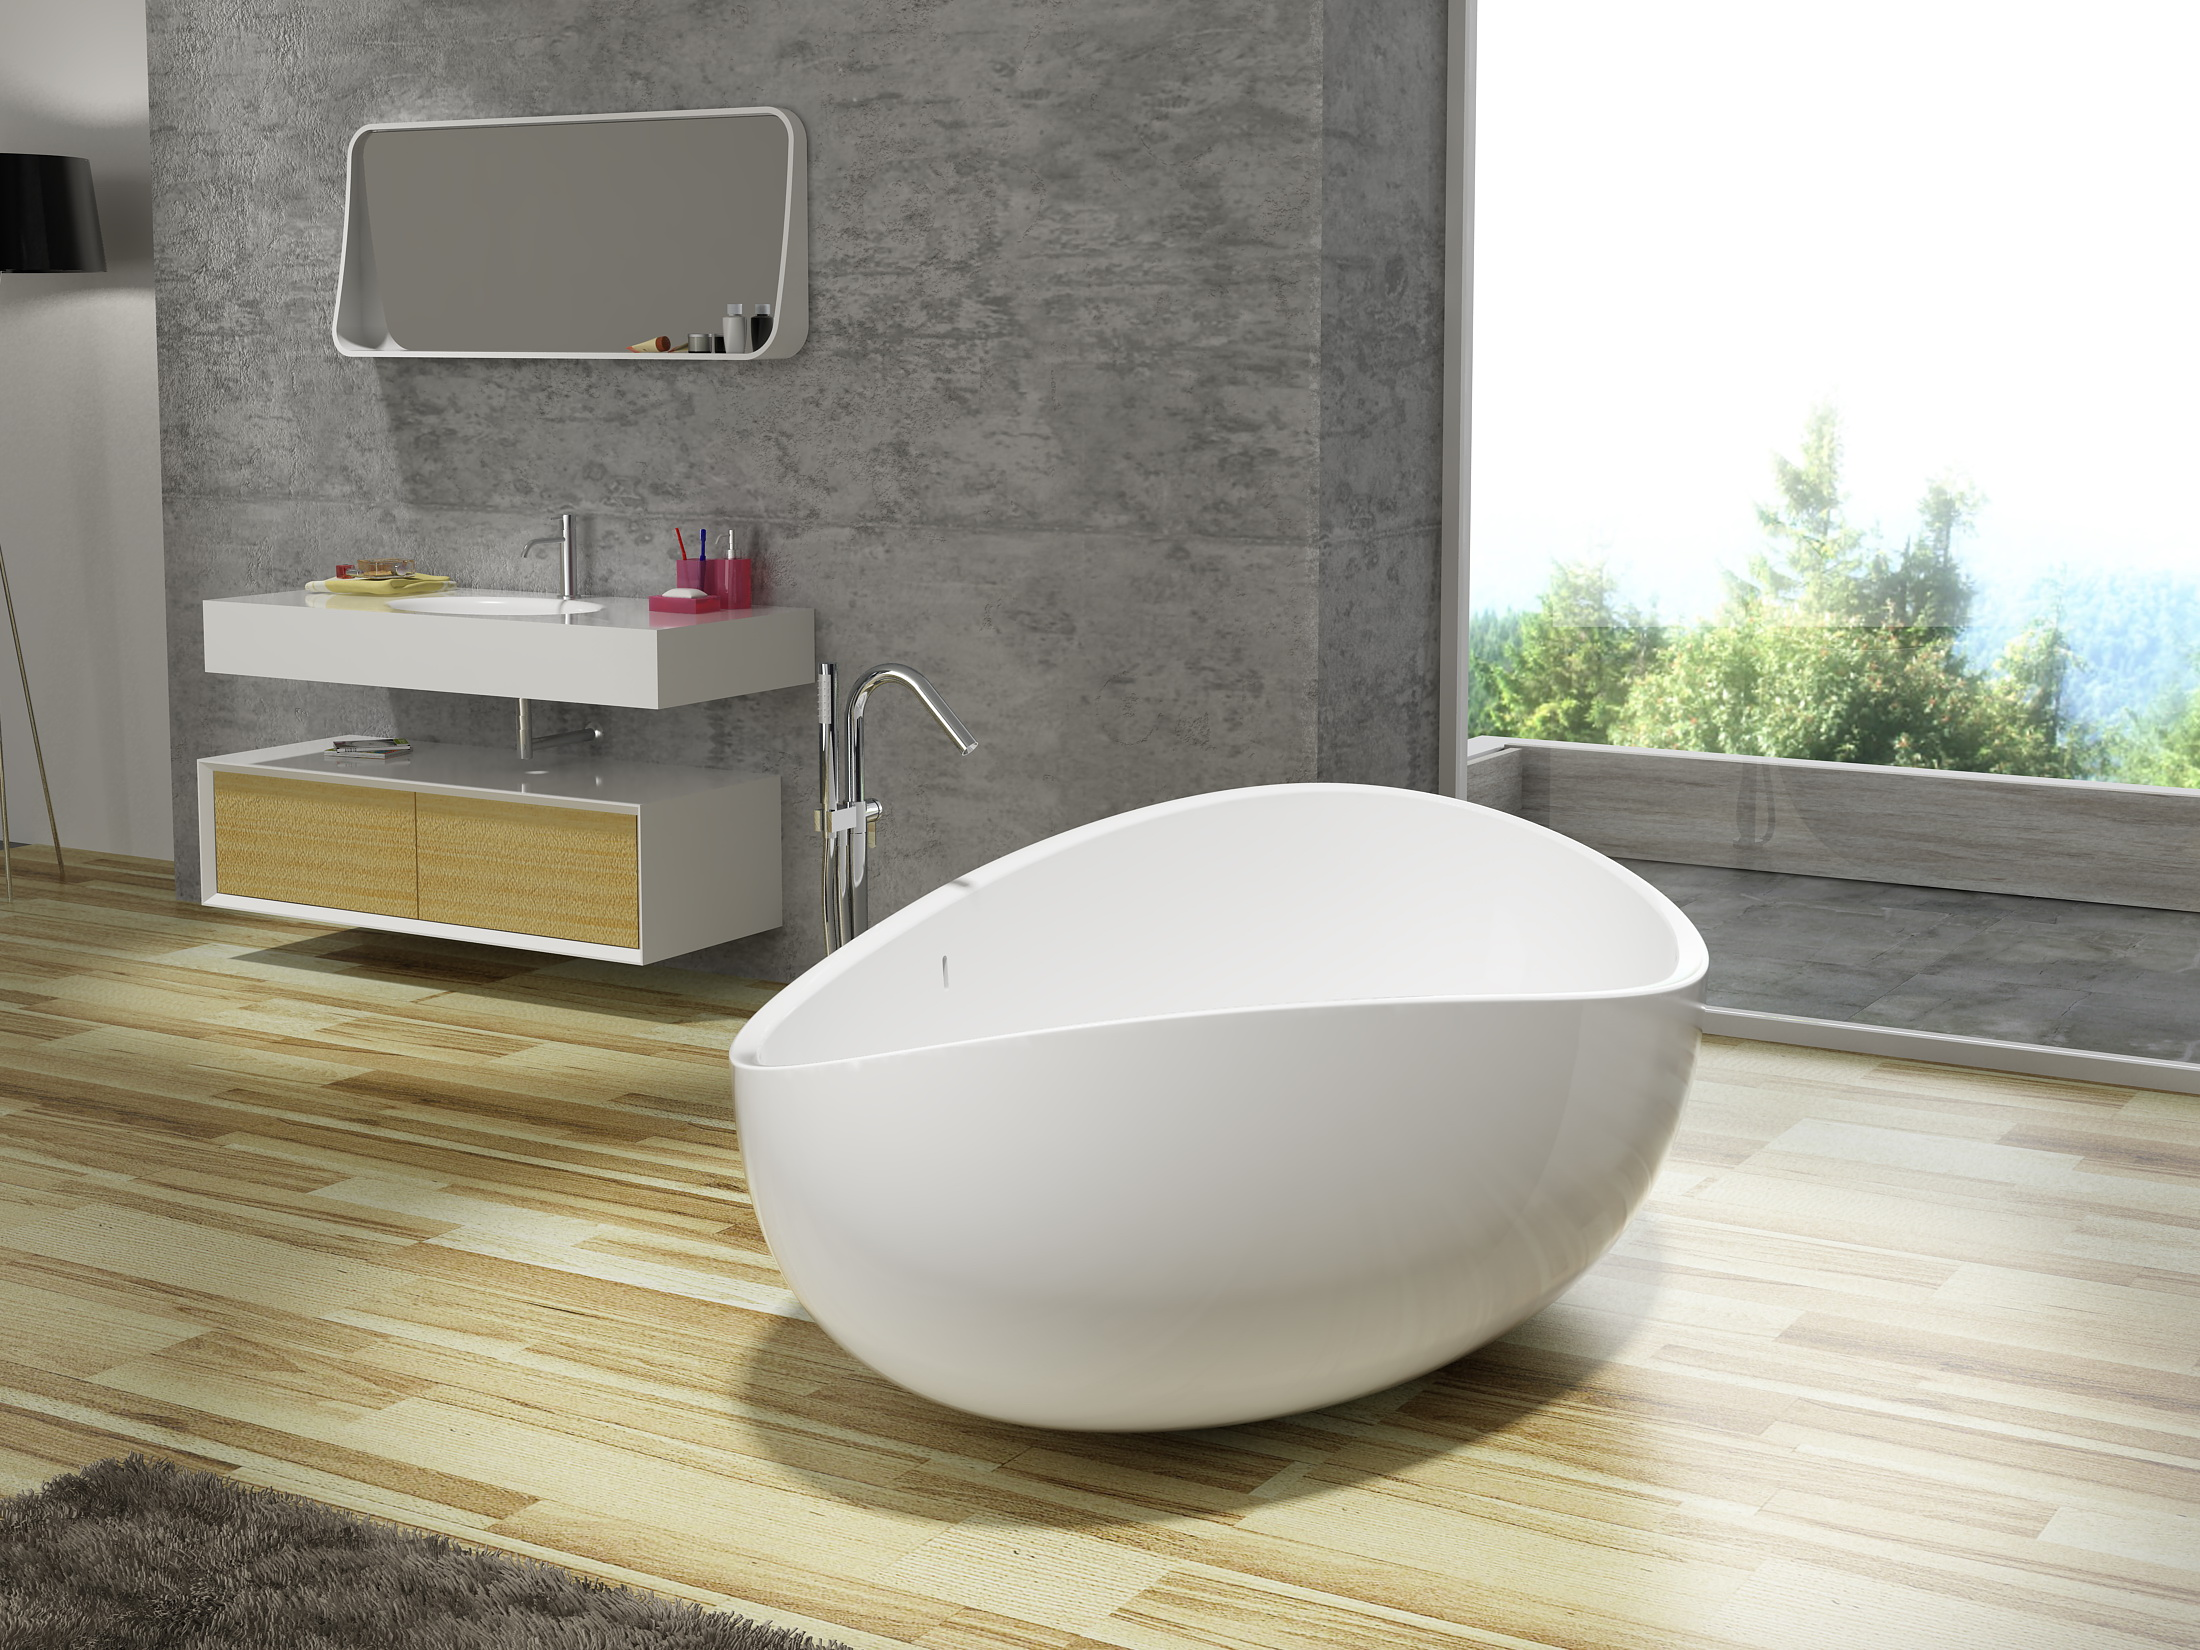 Freestanding Bathtub (Onda)